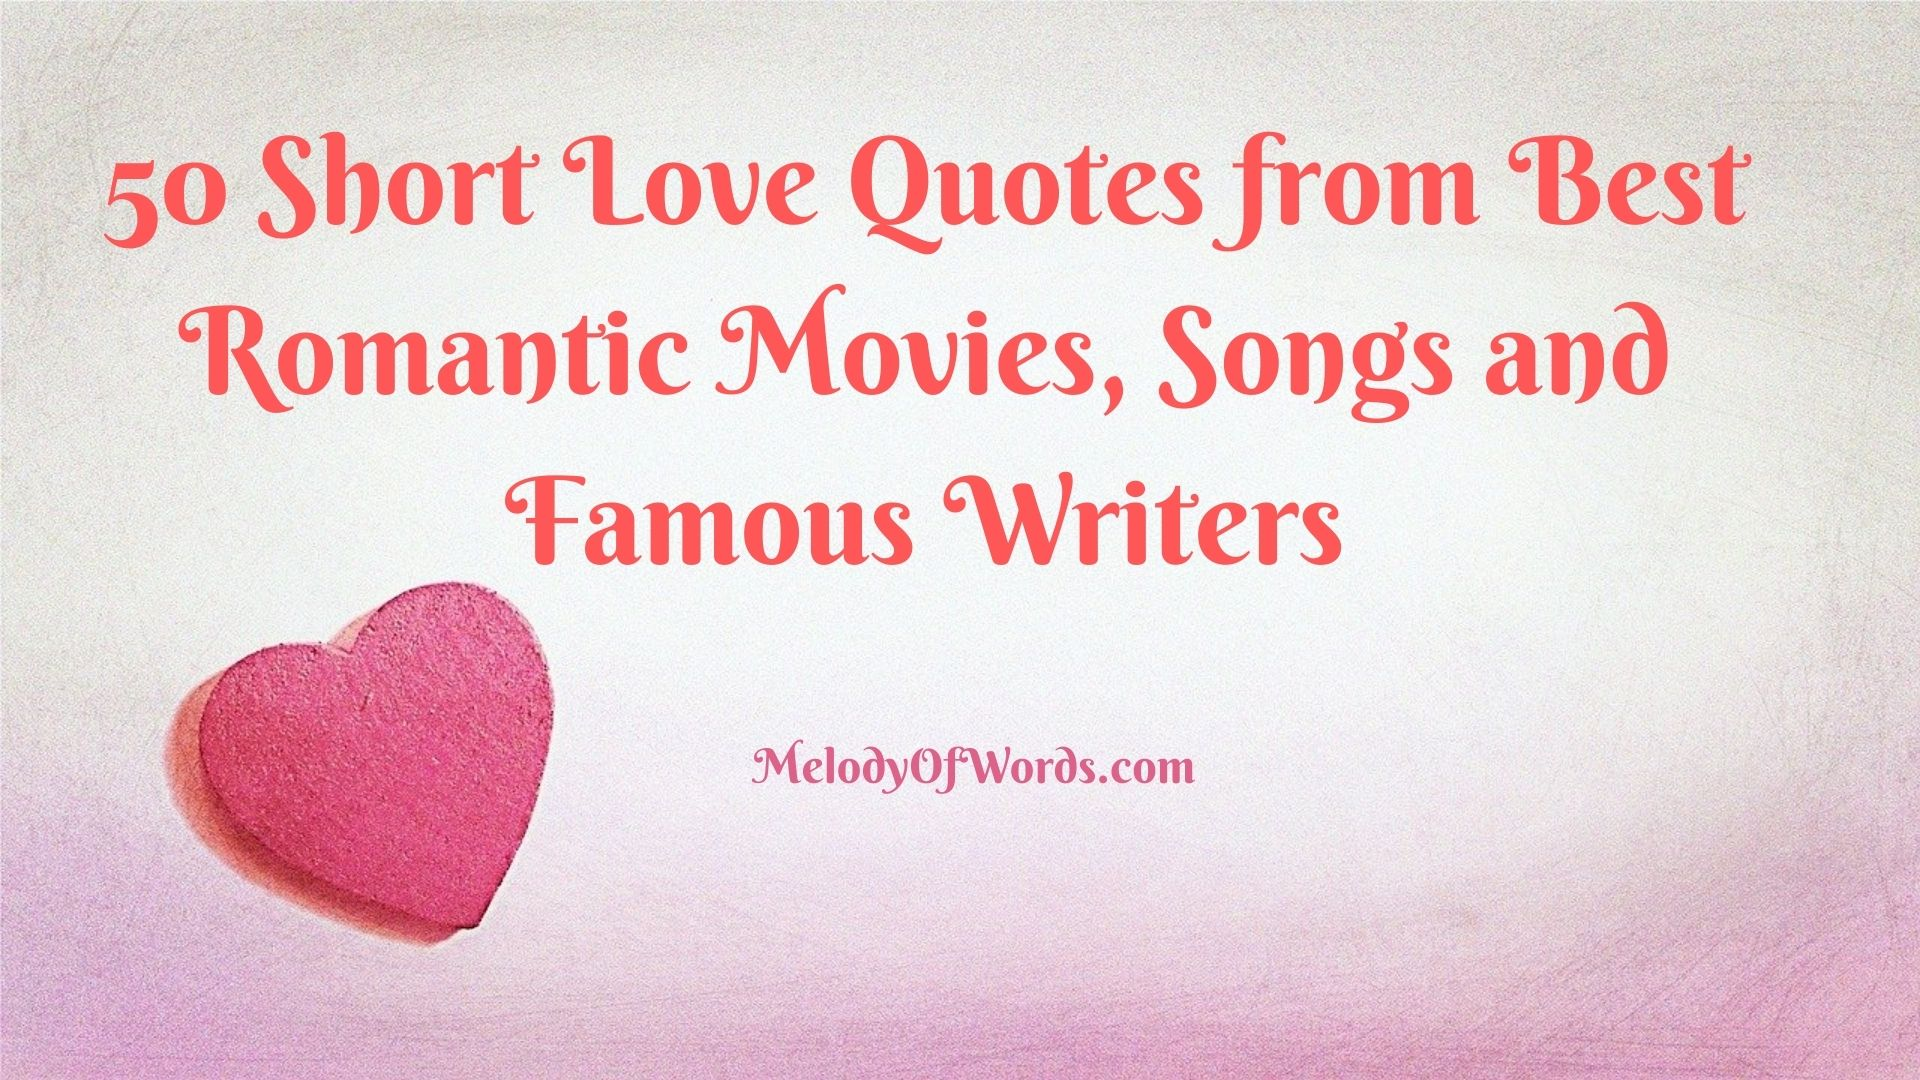 100 Short Love Quotes from Best Romantic Movies, Songs & Famous Writers